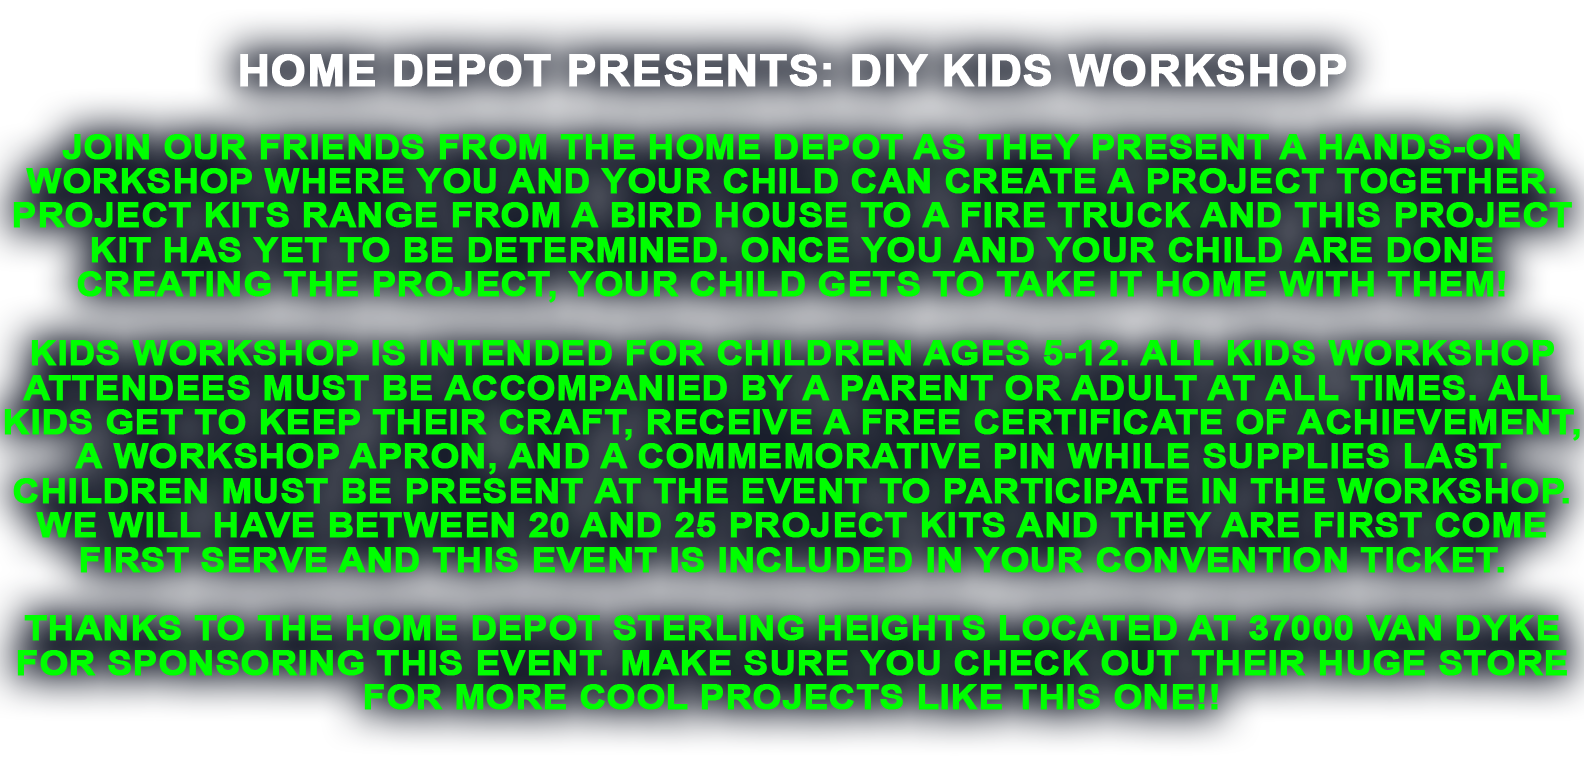 Home-Depot-DIY-Kids-Workshop-Page.png